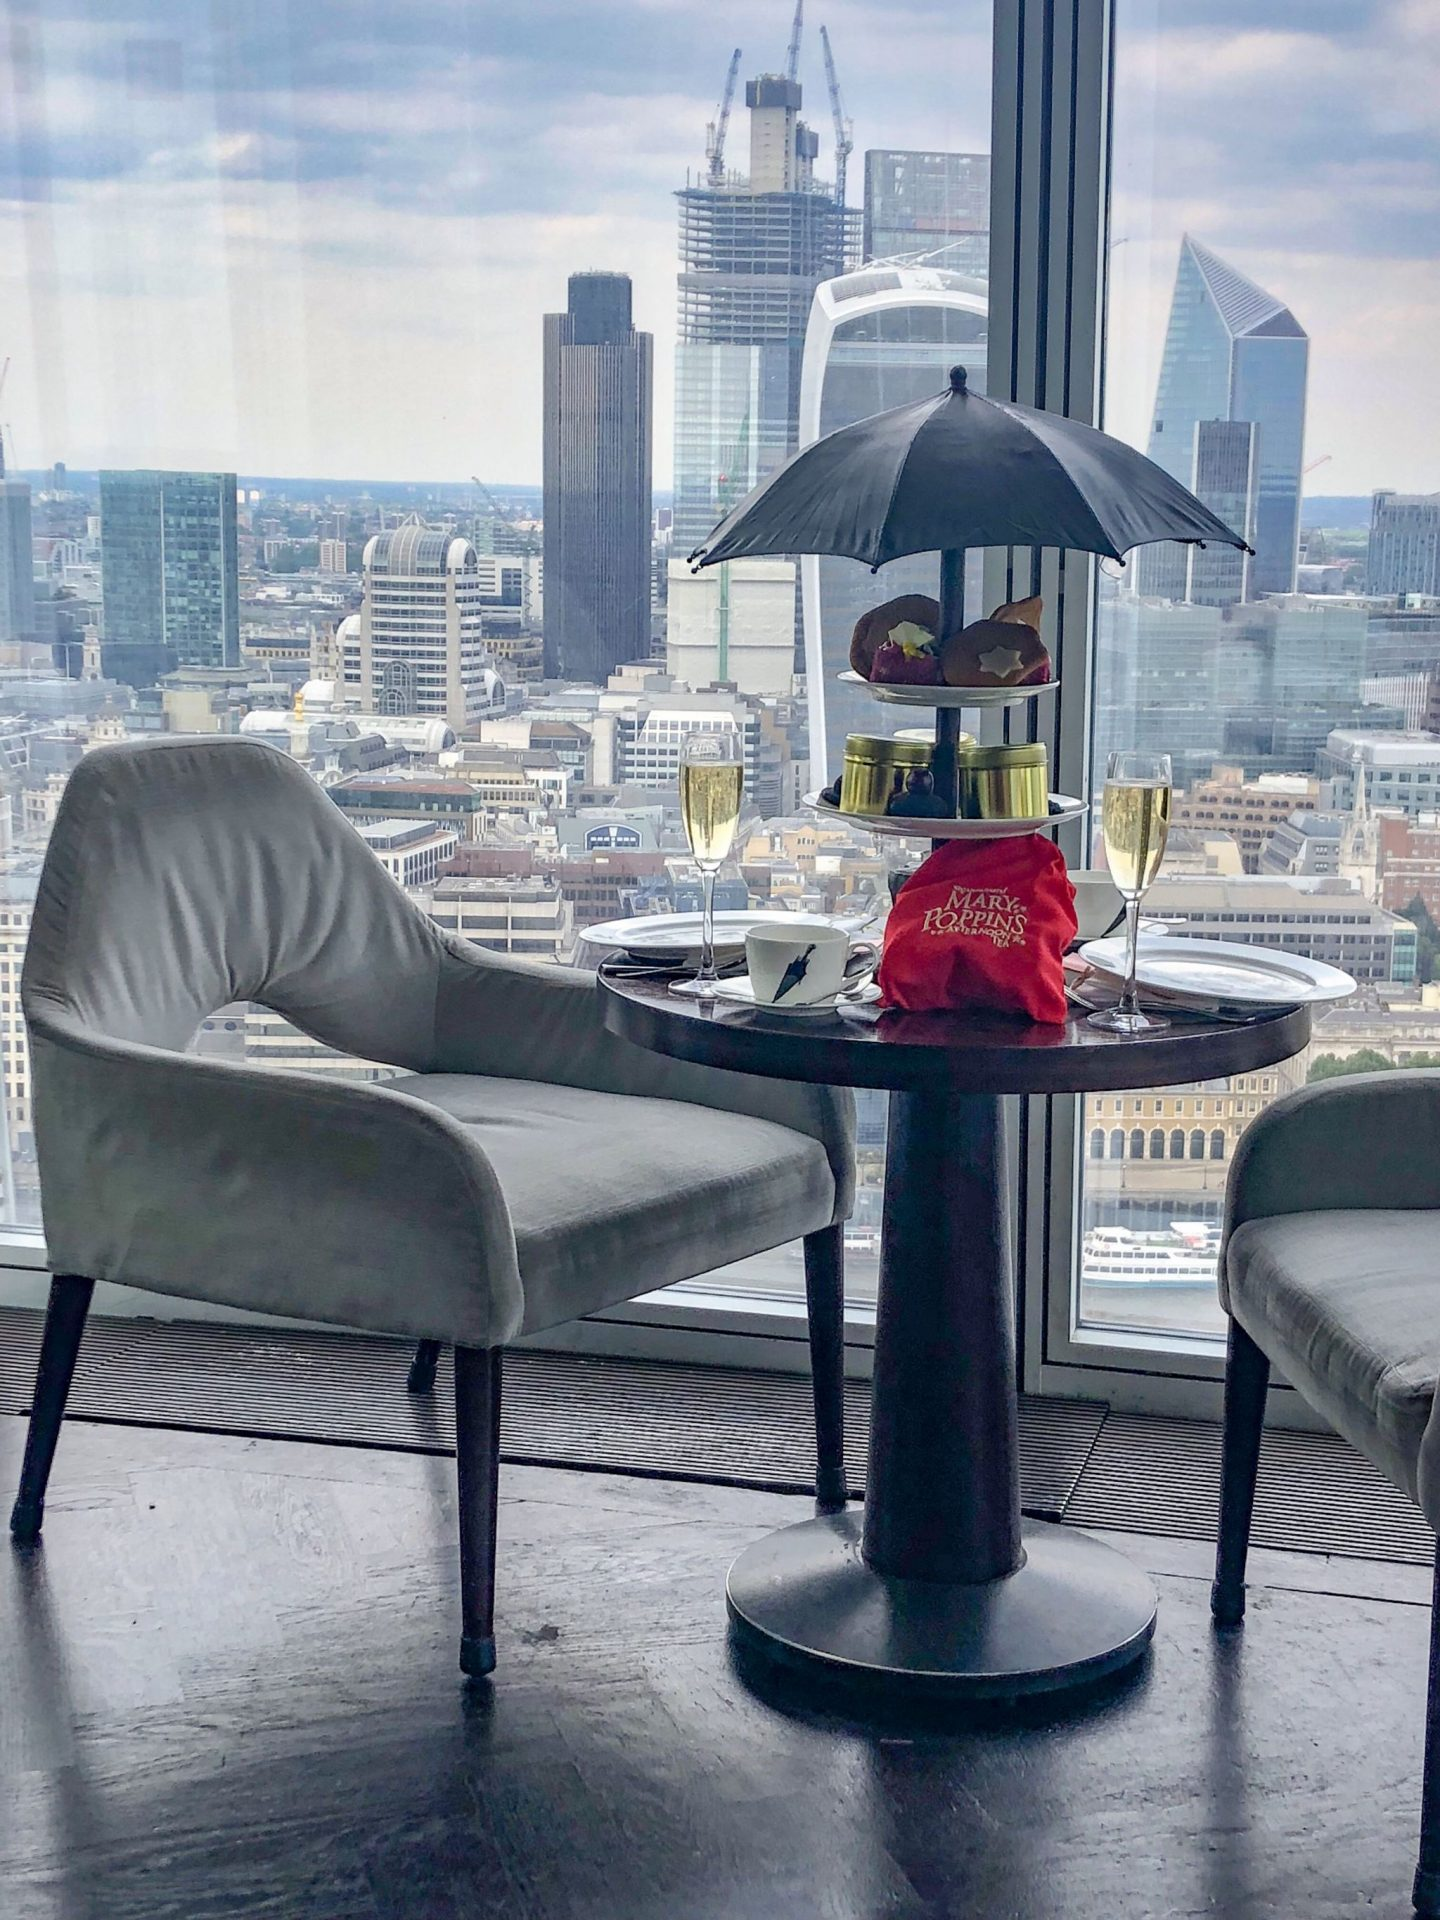 A Supercalifragilisticexpialidocious Mary Poppins Afternoon Tea at Aqua Shard